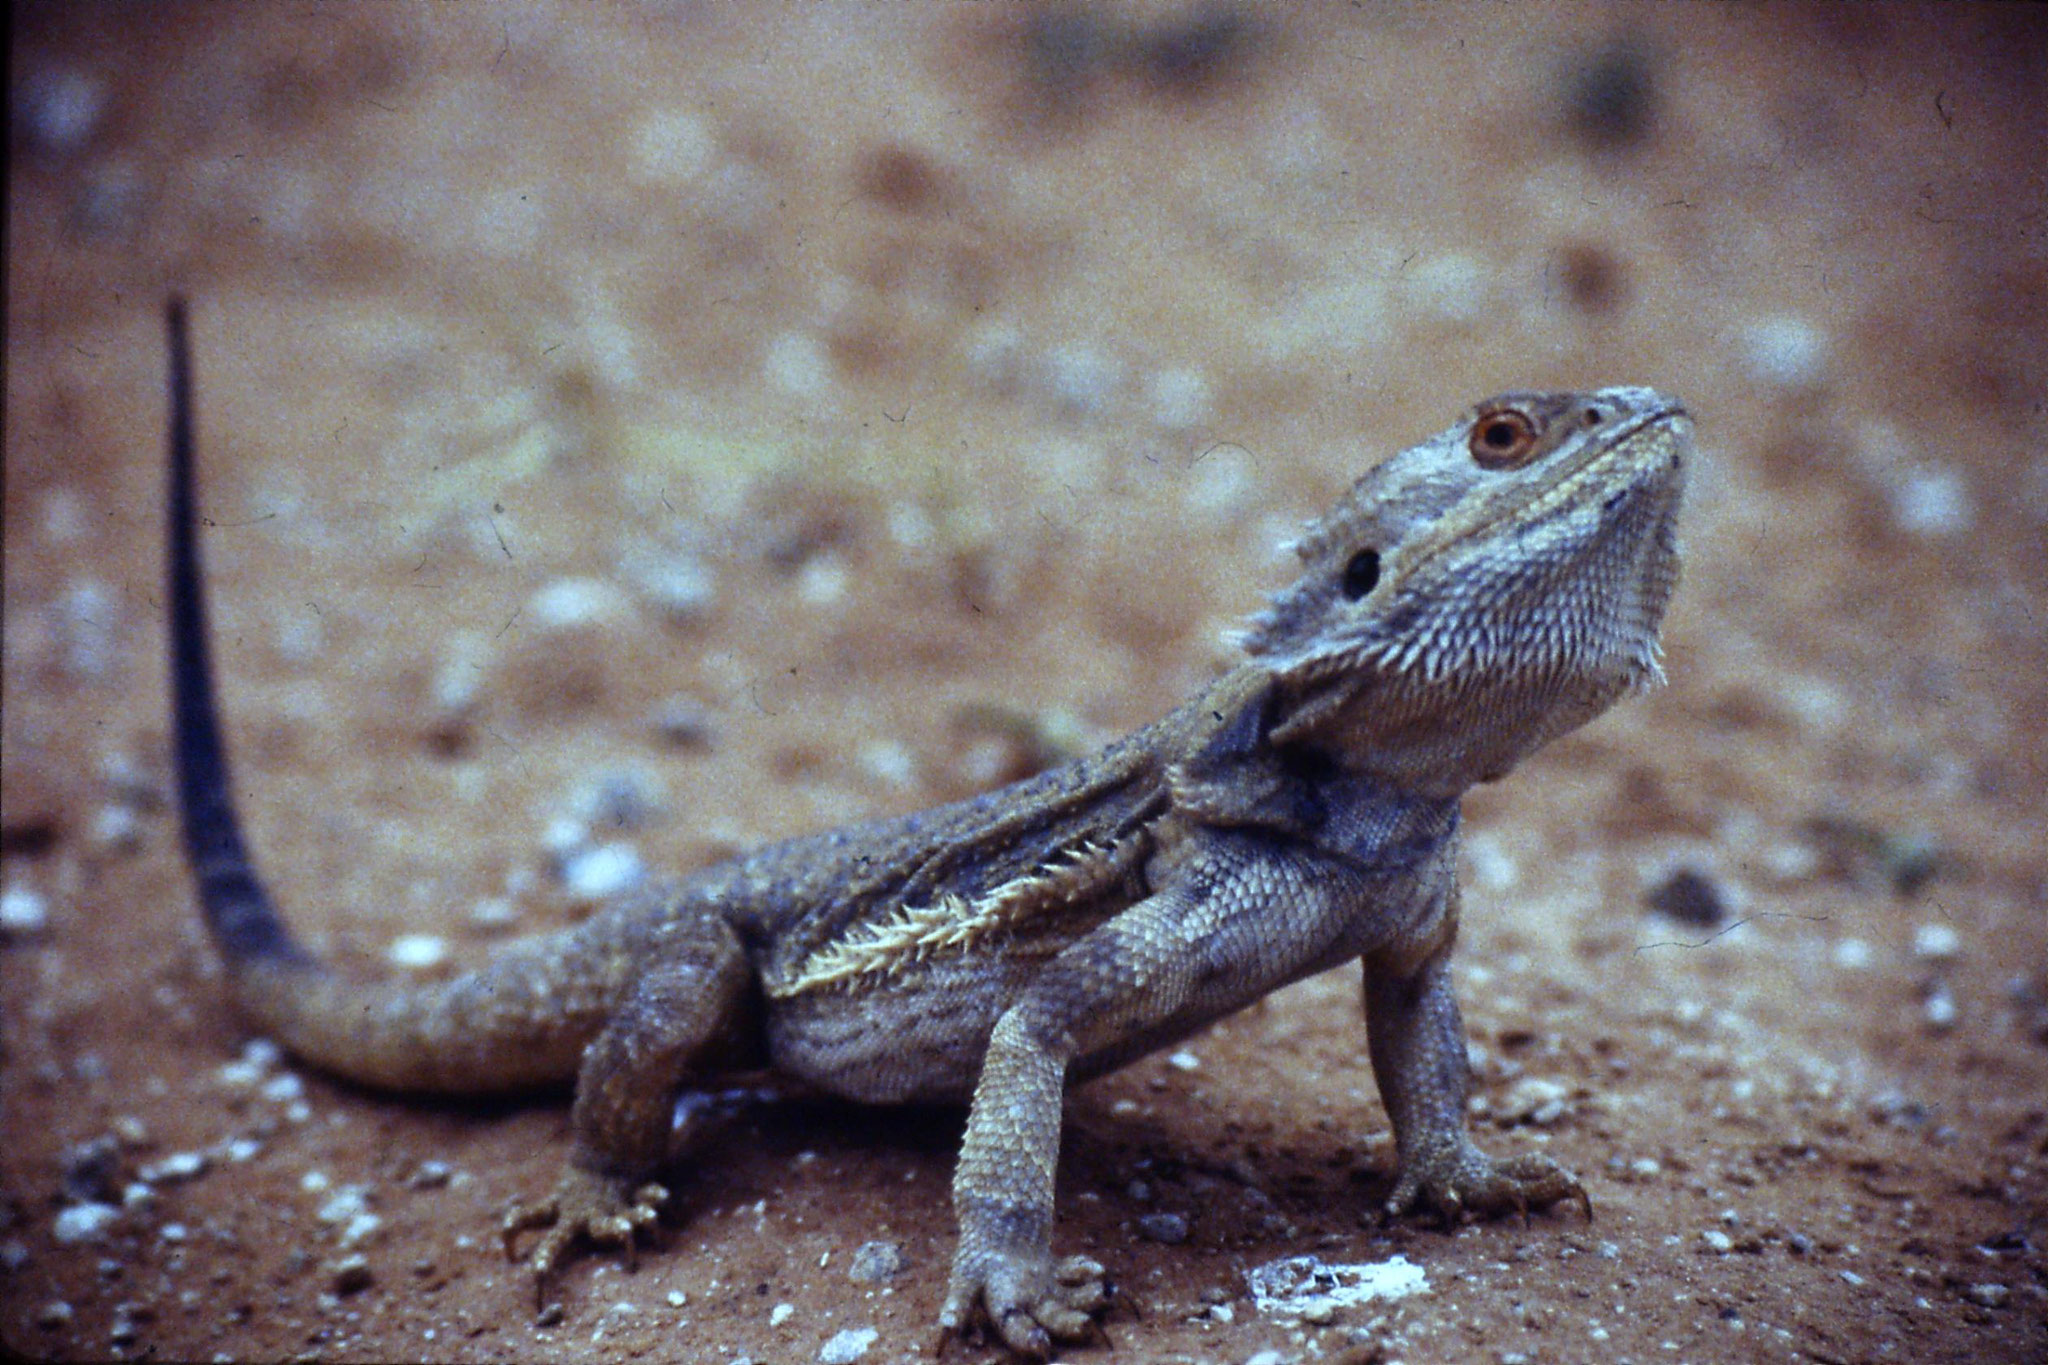 3/11/1990: 24: lizard 2ft near Merindee